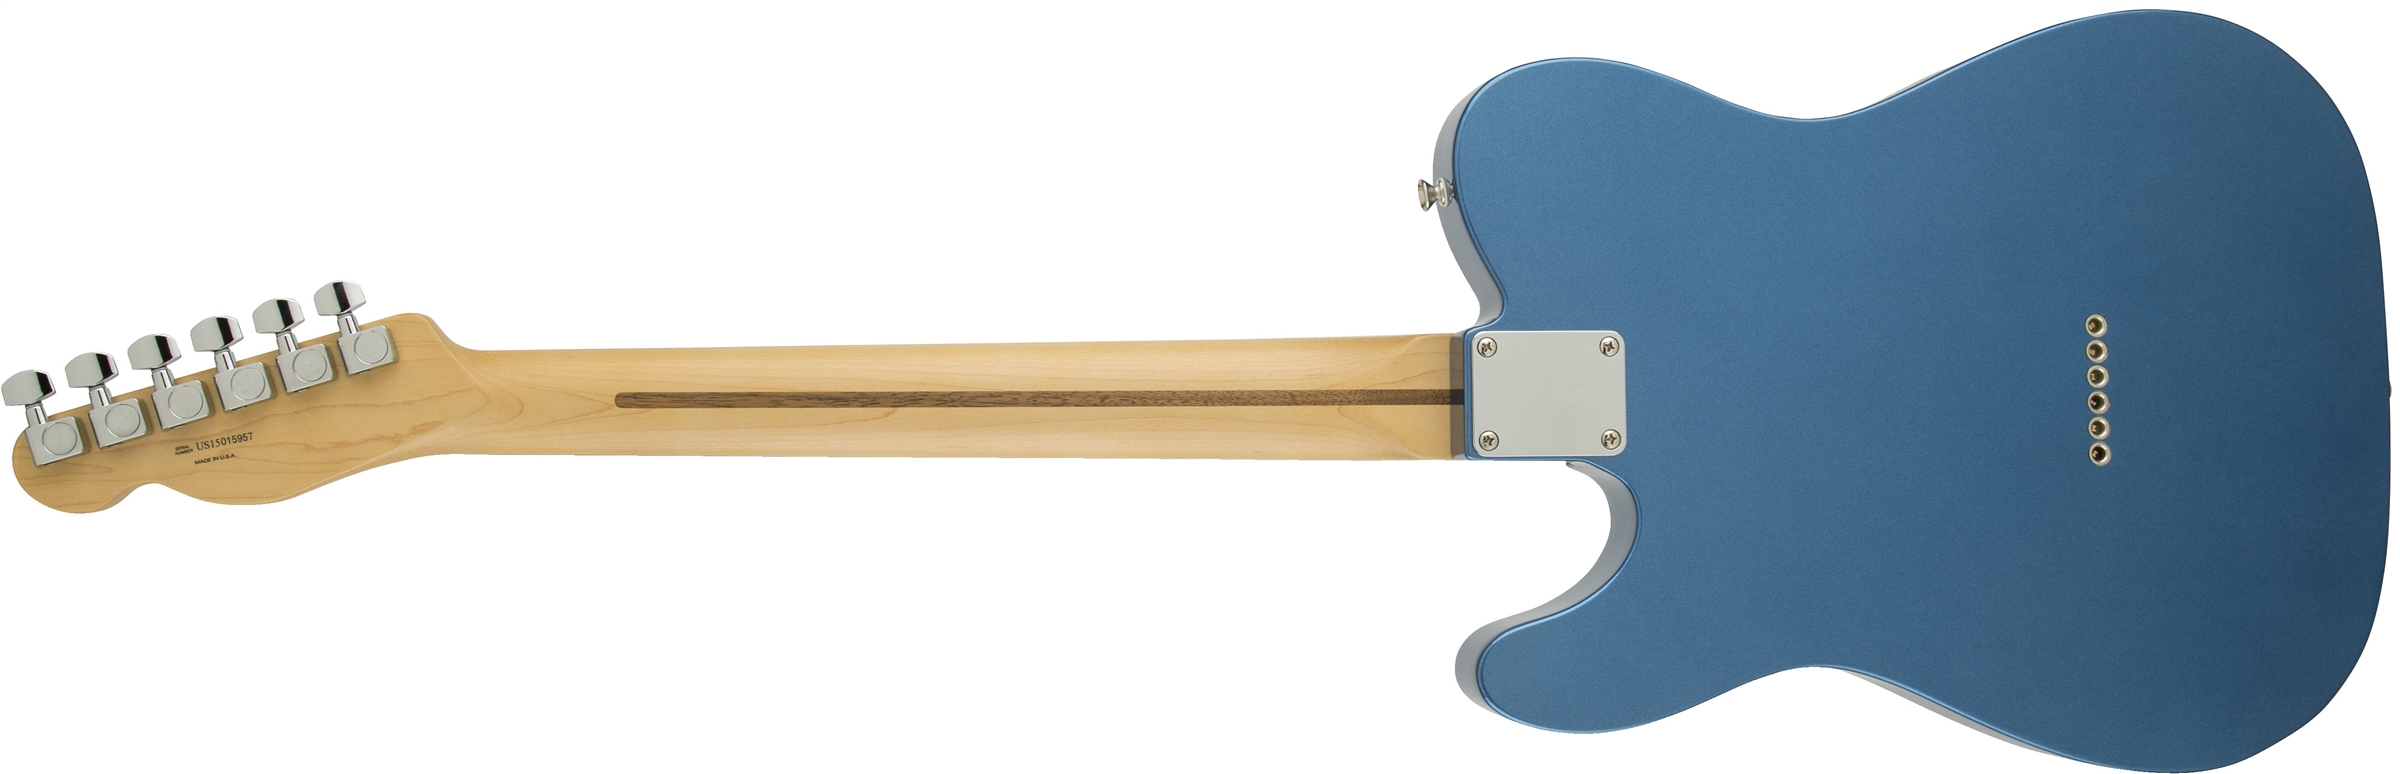 Fender American Special Telecaster® Lake Placid Blue Rosewood Fingerboard Electric Guitar